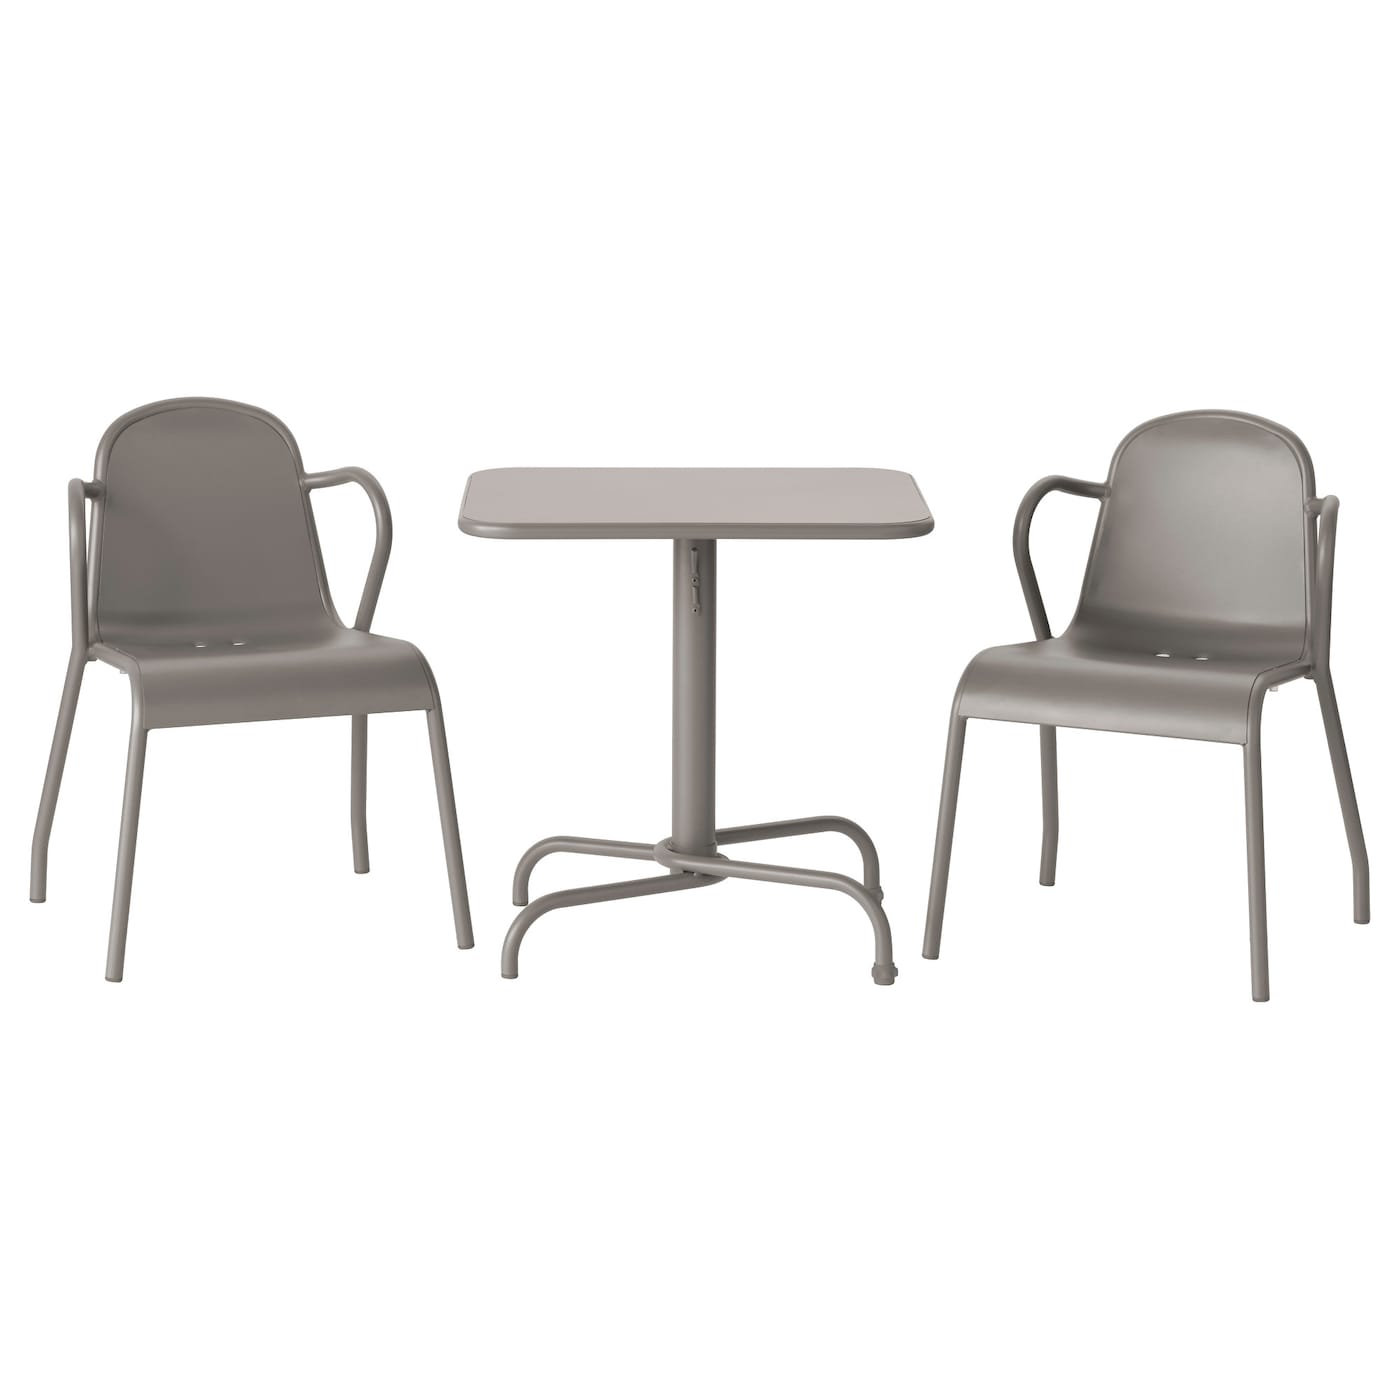 IKEA TUNHOLMEN table+2 chairs, outdoor Can be stacked, which helps you save space.